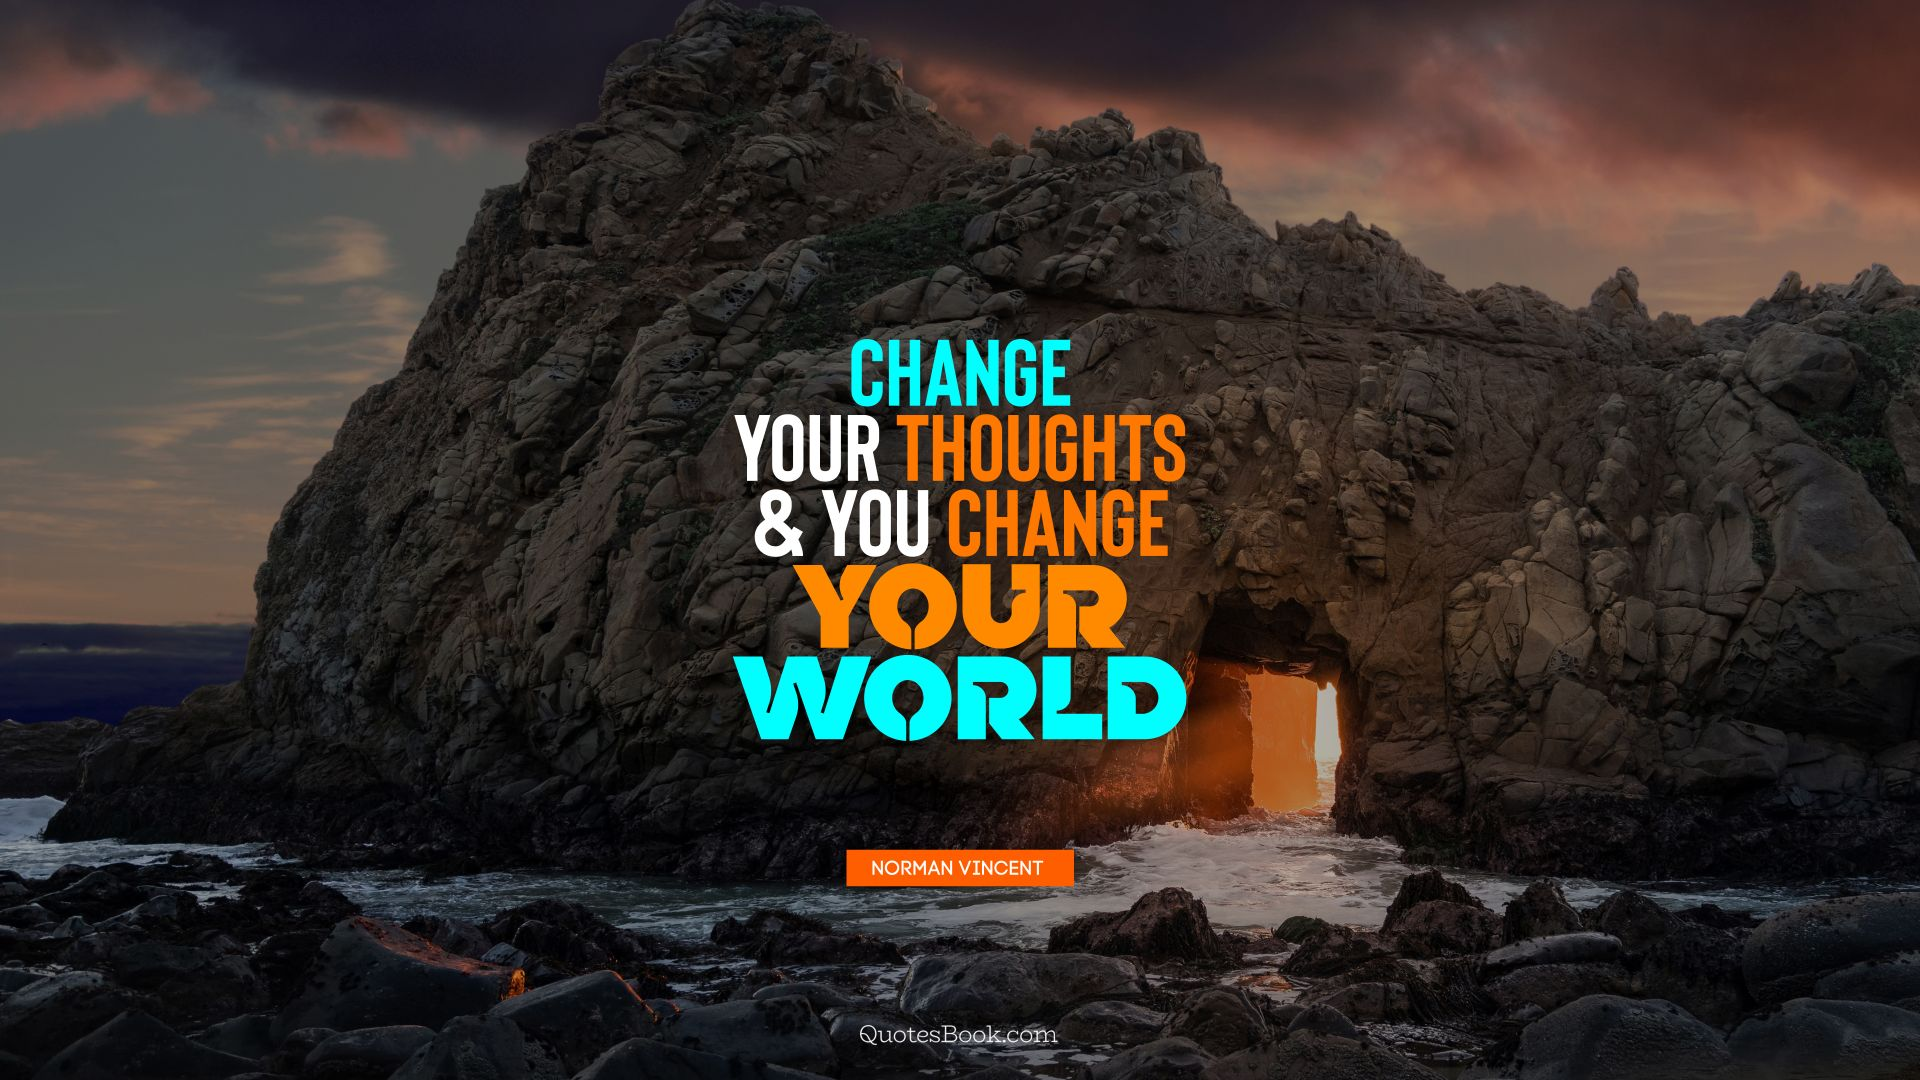 Change your thoughts and you change your world. - Quote by Norman Vincent Peale